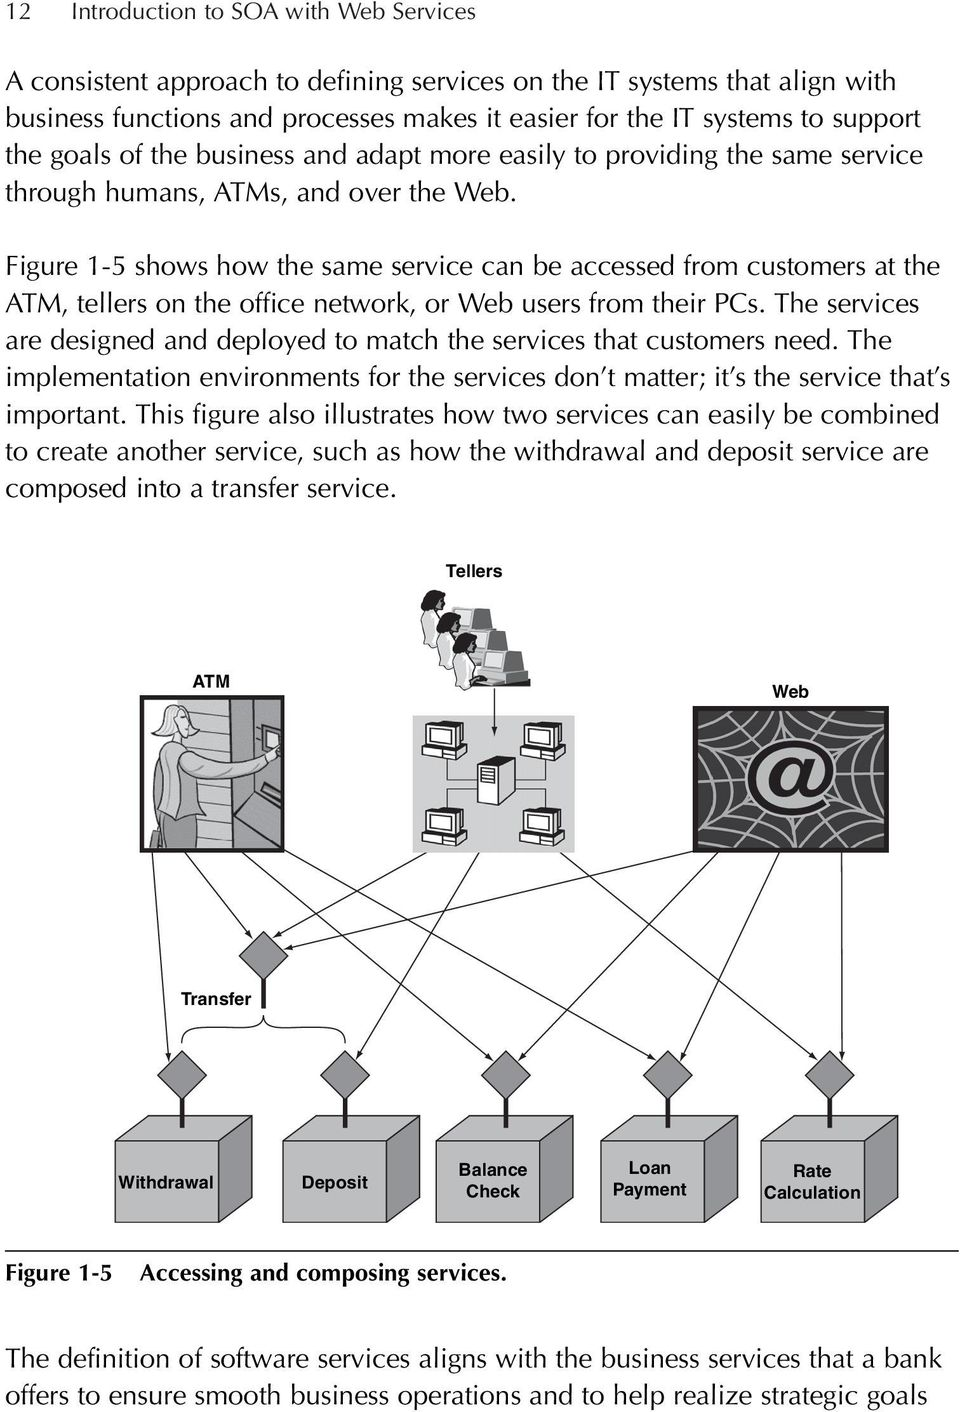 Figure 1-5 shows how the same service can be accessed from customers at the ATM, tellers on the office network, or Web users from their PCs.